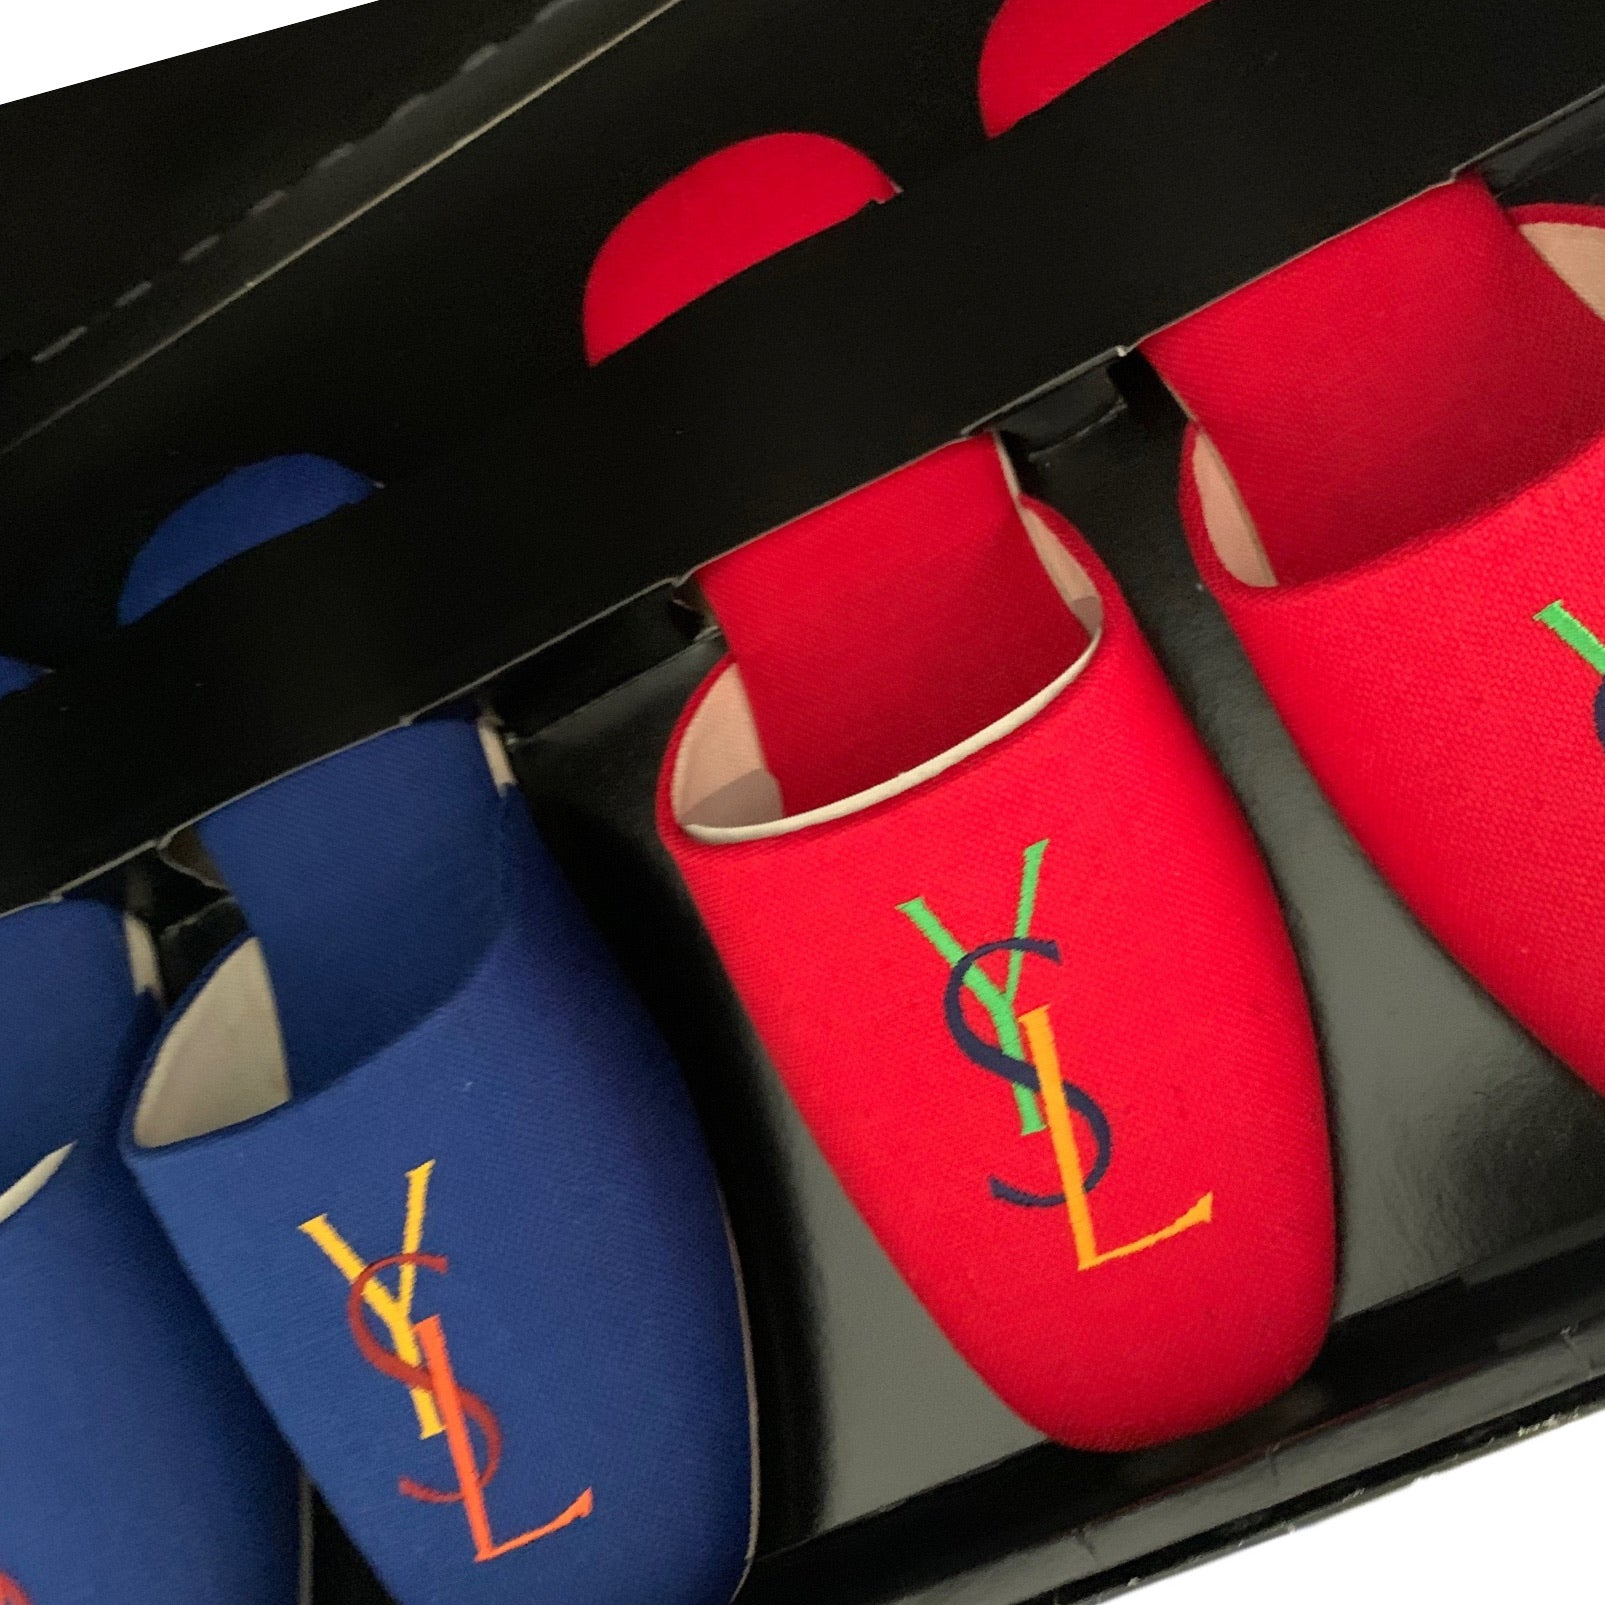 YSL Slipper Box Set